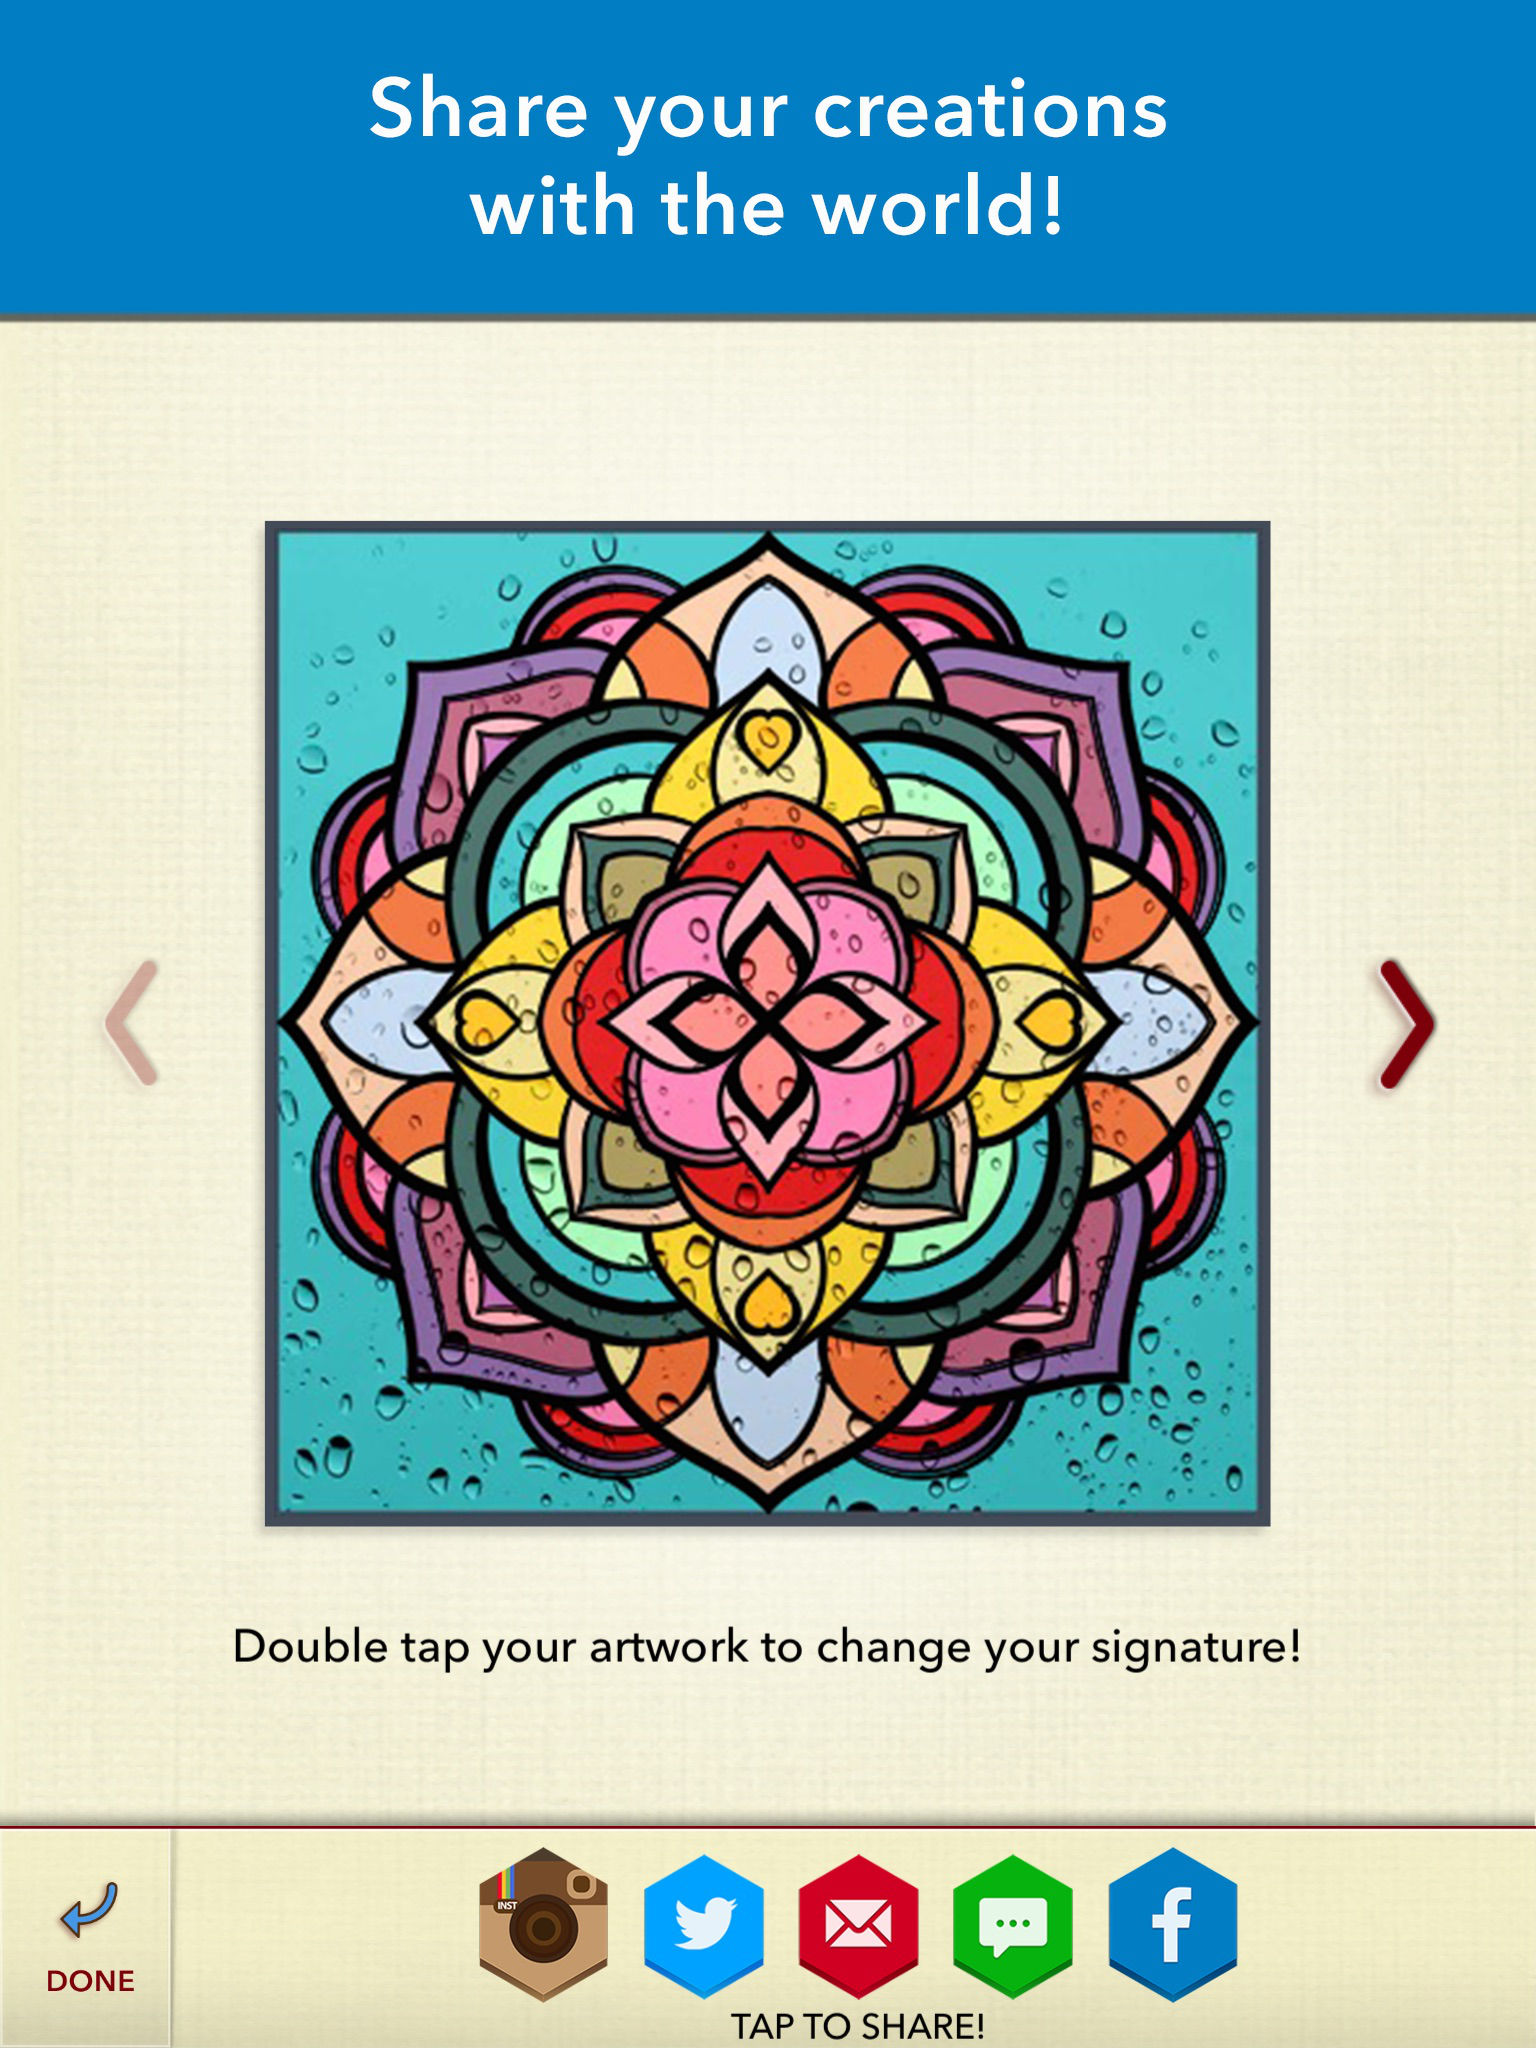 Color therapy anti stress coloring book app - App Description